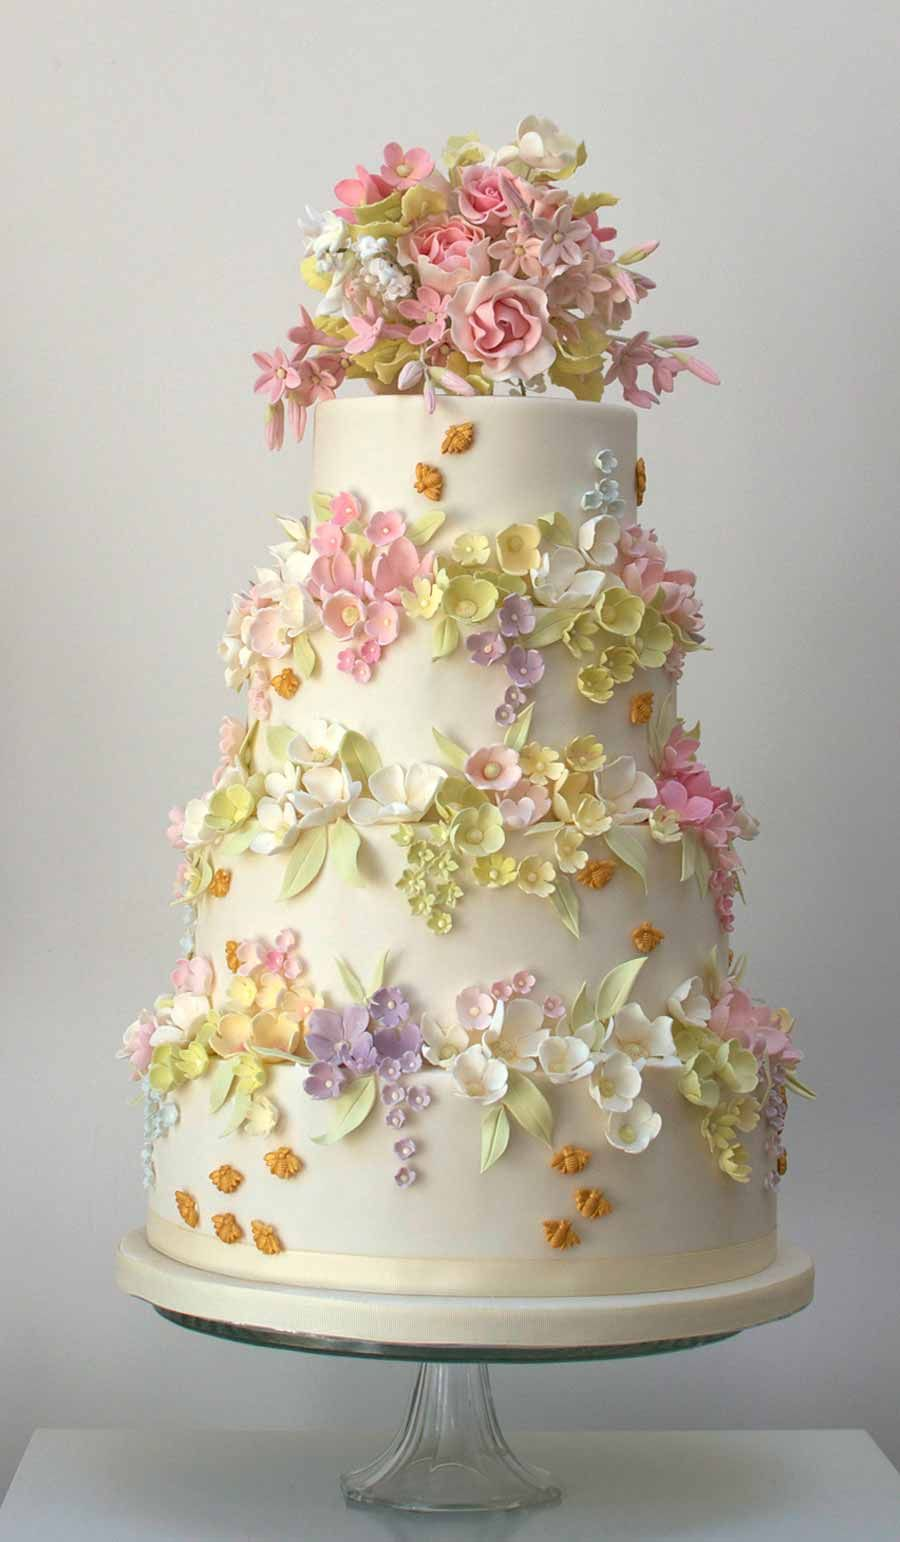 Cake Design Bakery : most beautiful birthday cakes in the world - Google Search ...